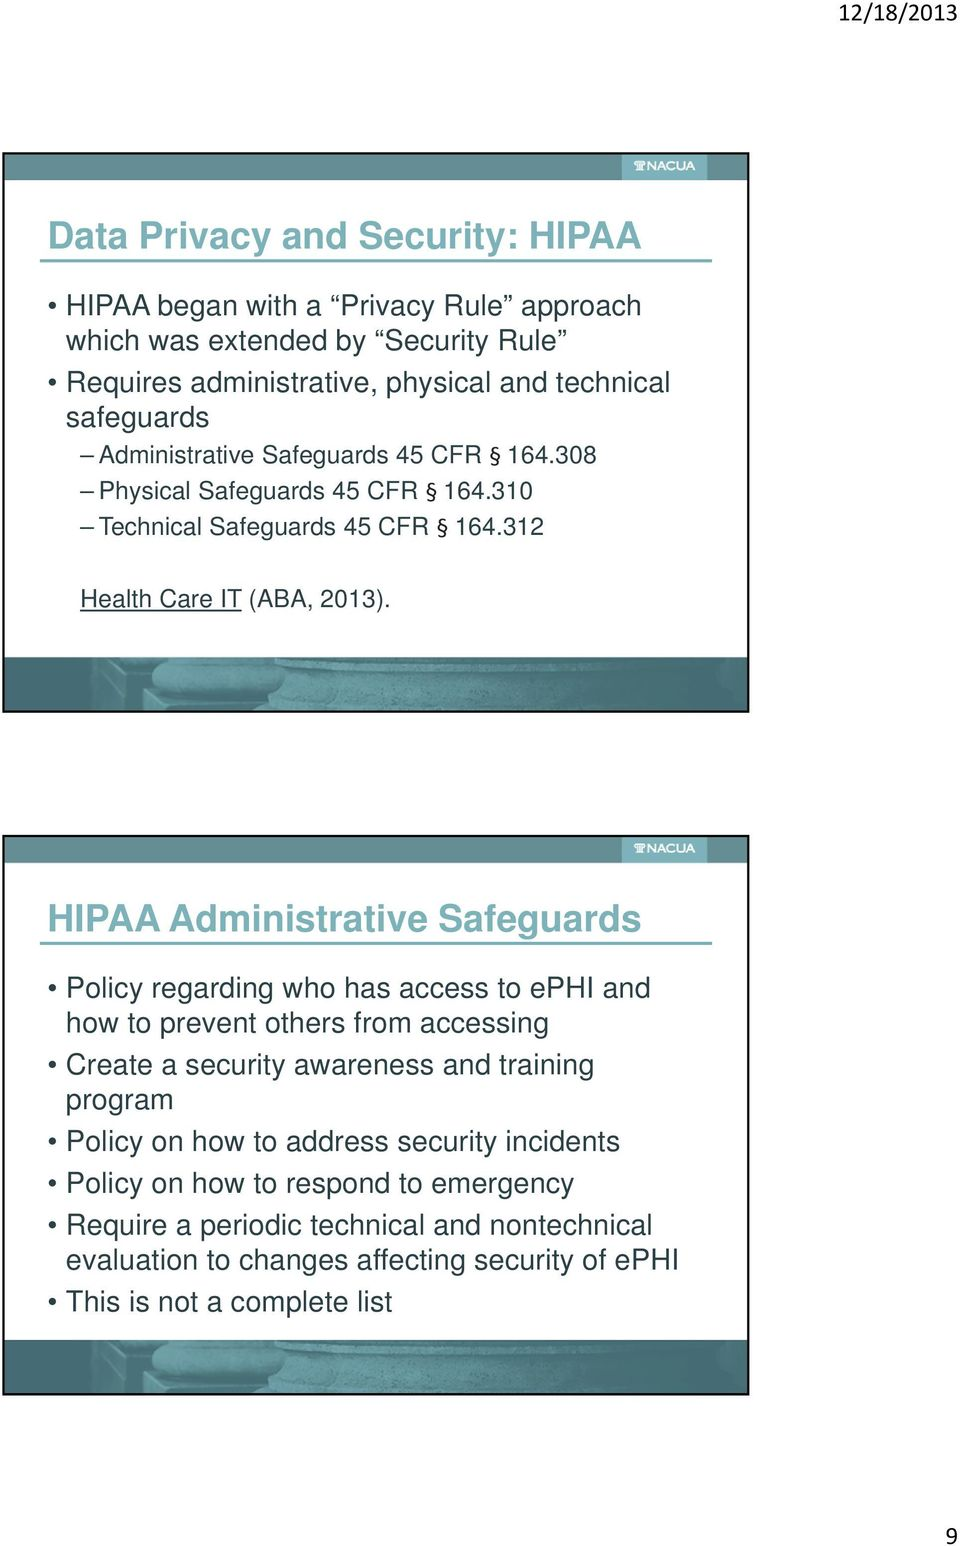 HIPAA Administrative Safeguards Policy regarding who has access to ephi and how to prevent others from accessing Create a security awareness and training program Policy